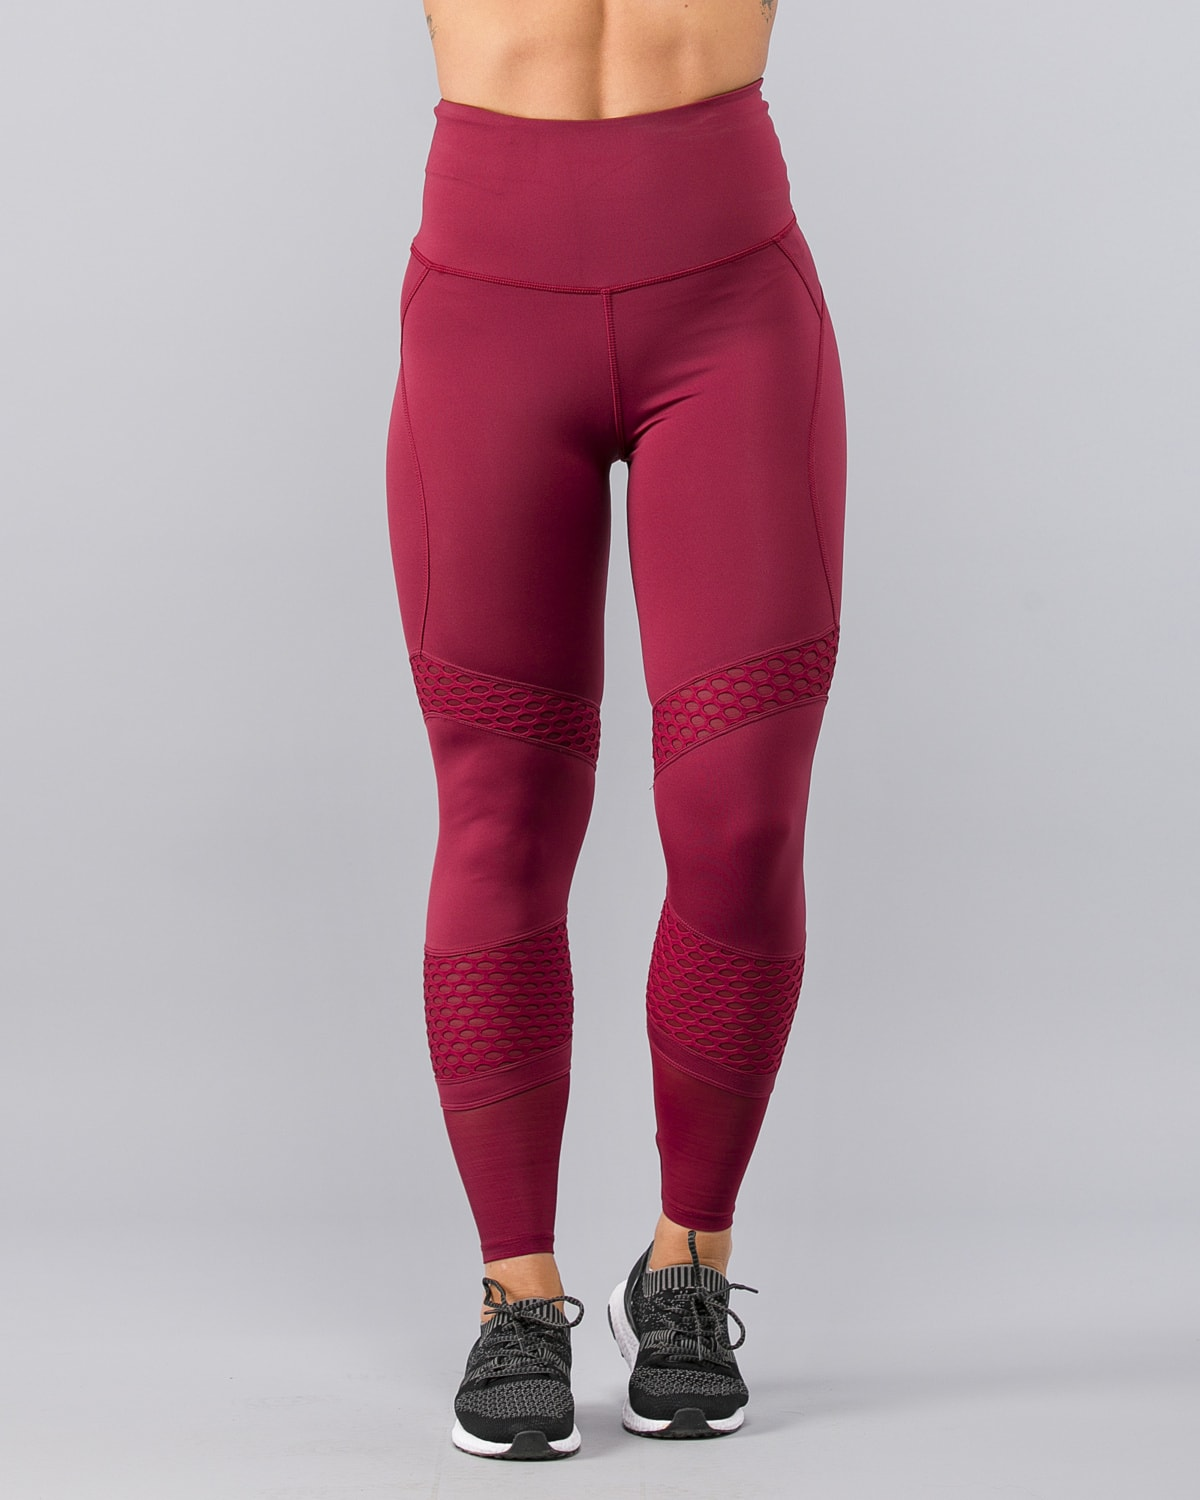 Better-Bodies-Waverly-Mesh-Tights–Sangria-Red5